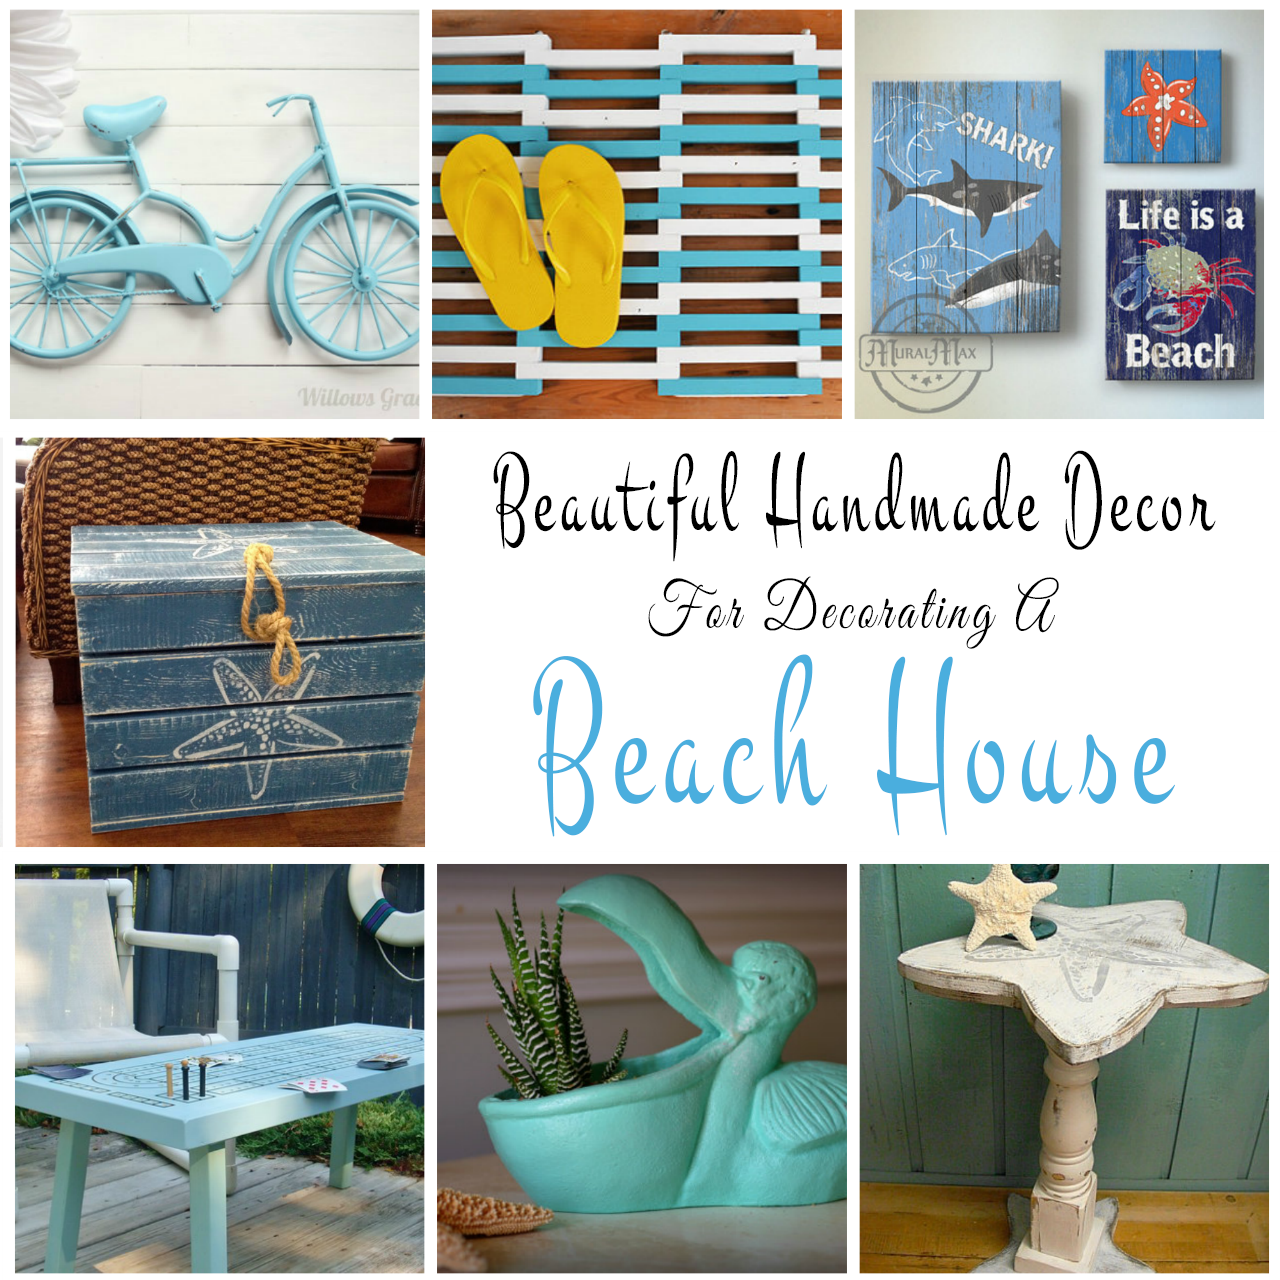 https://glitternspice.com/wp-content/uploads/2015/07/handmade-decor-for-decorating-a-beach-house-2.png